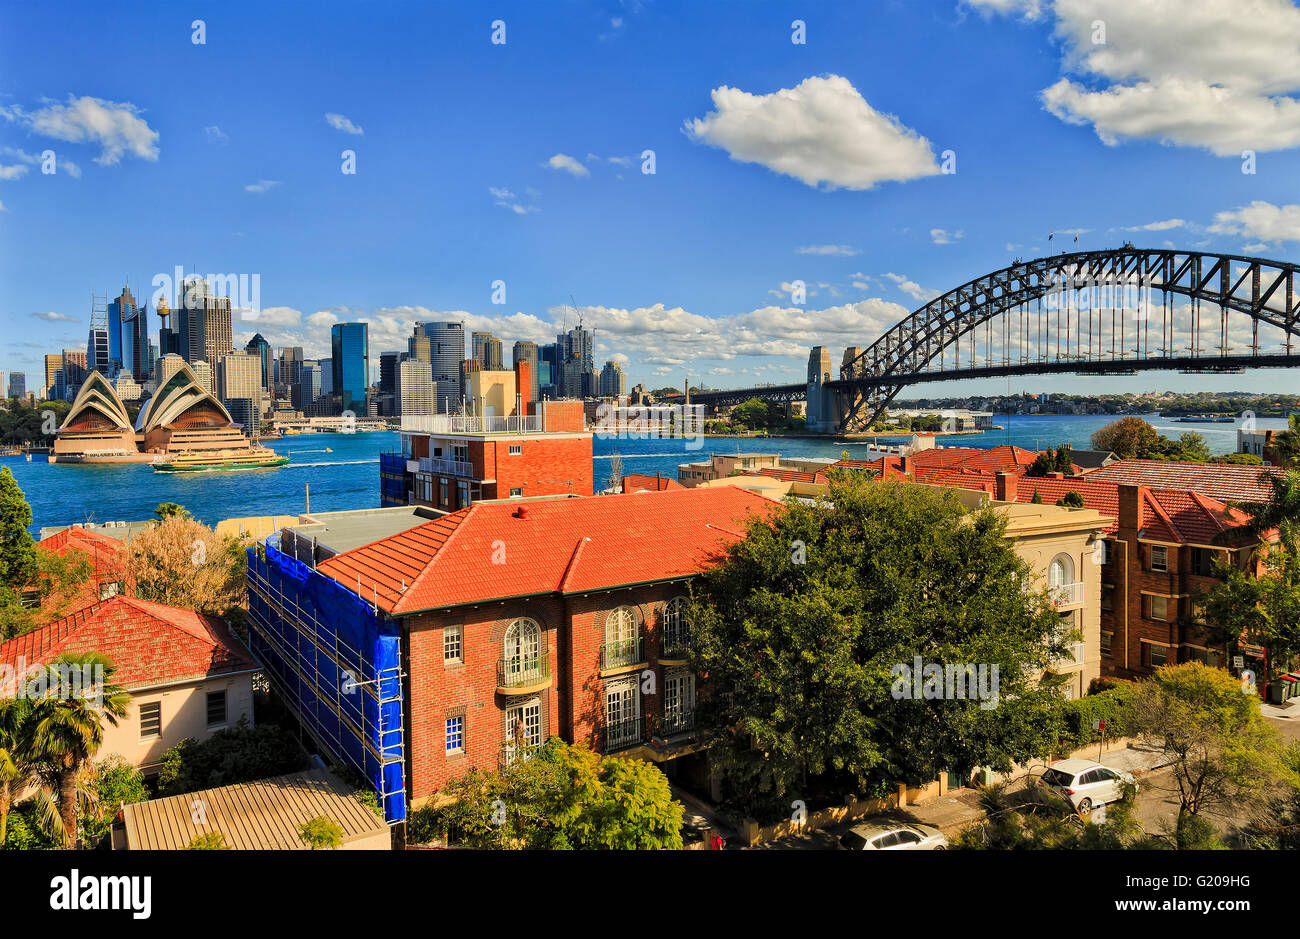 Sydney city landmarks with Harbour bridge and skyscrapers viewed across Harbour from Kirribilli above residential - Stock Image